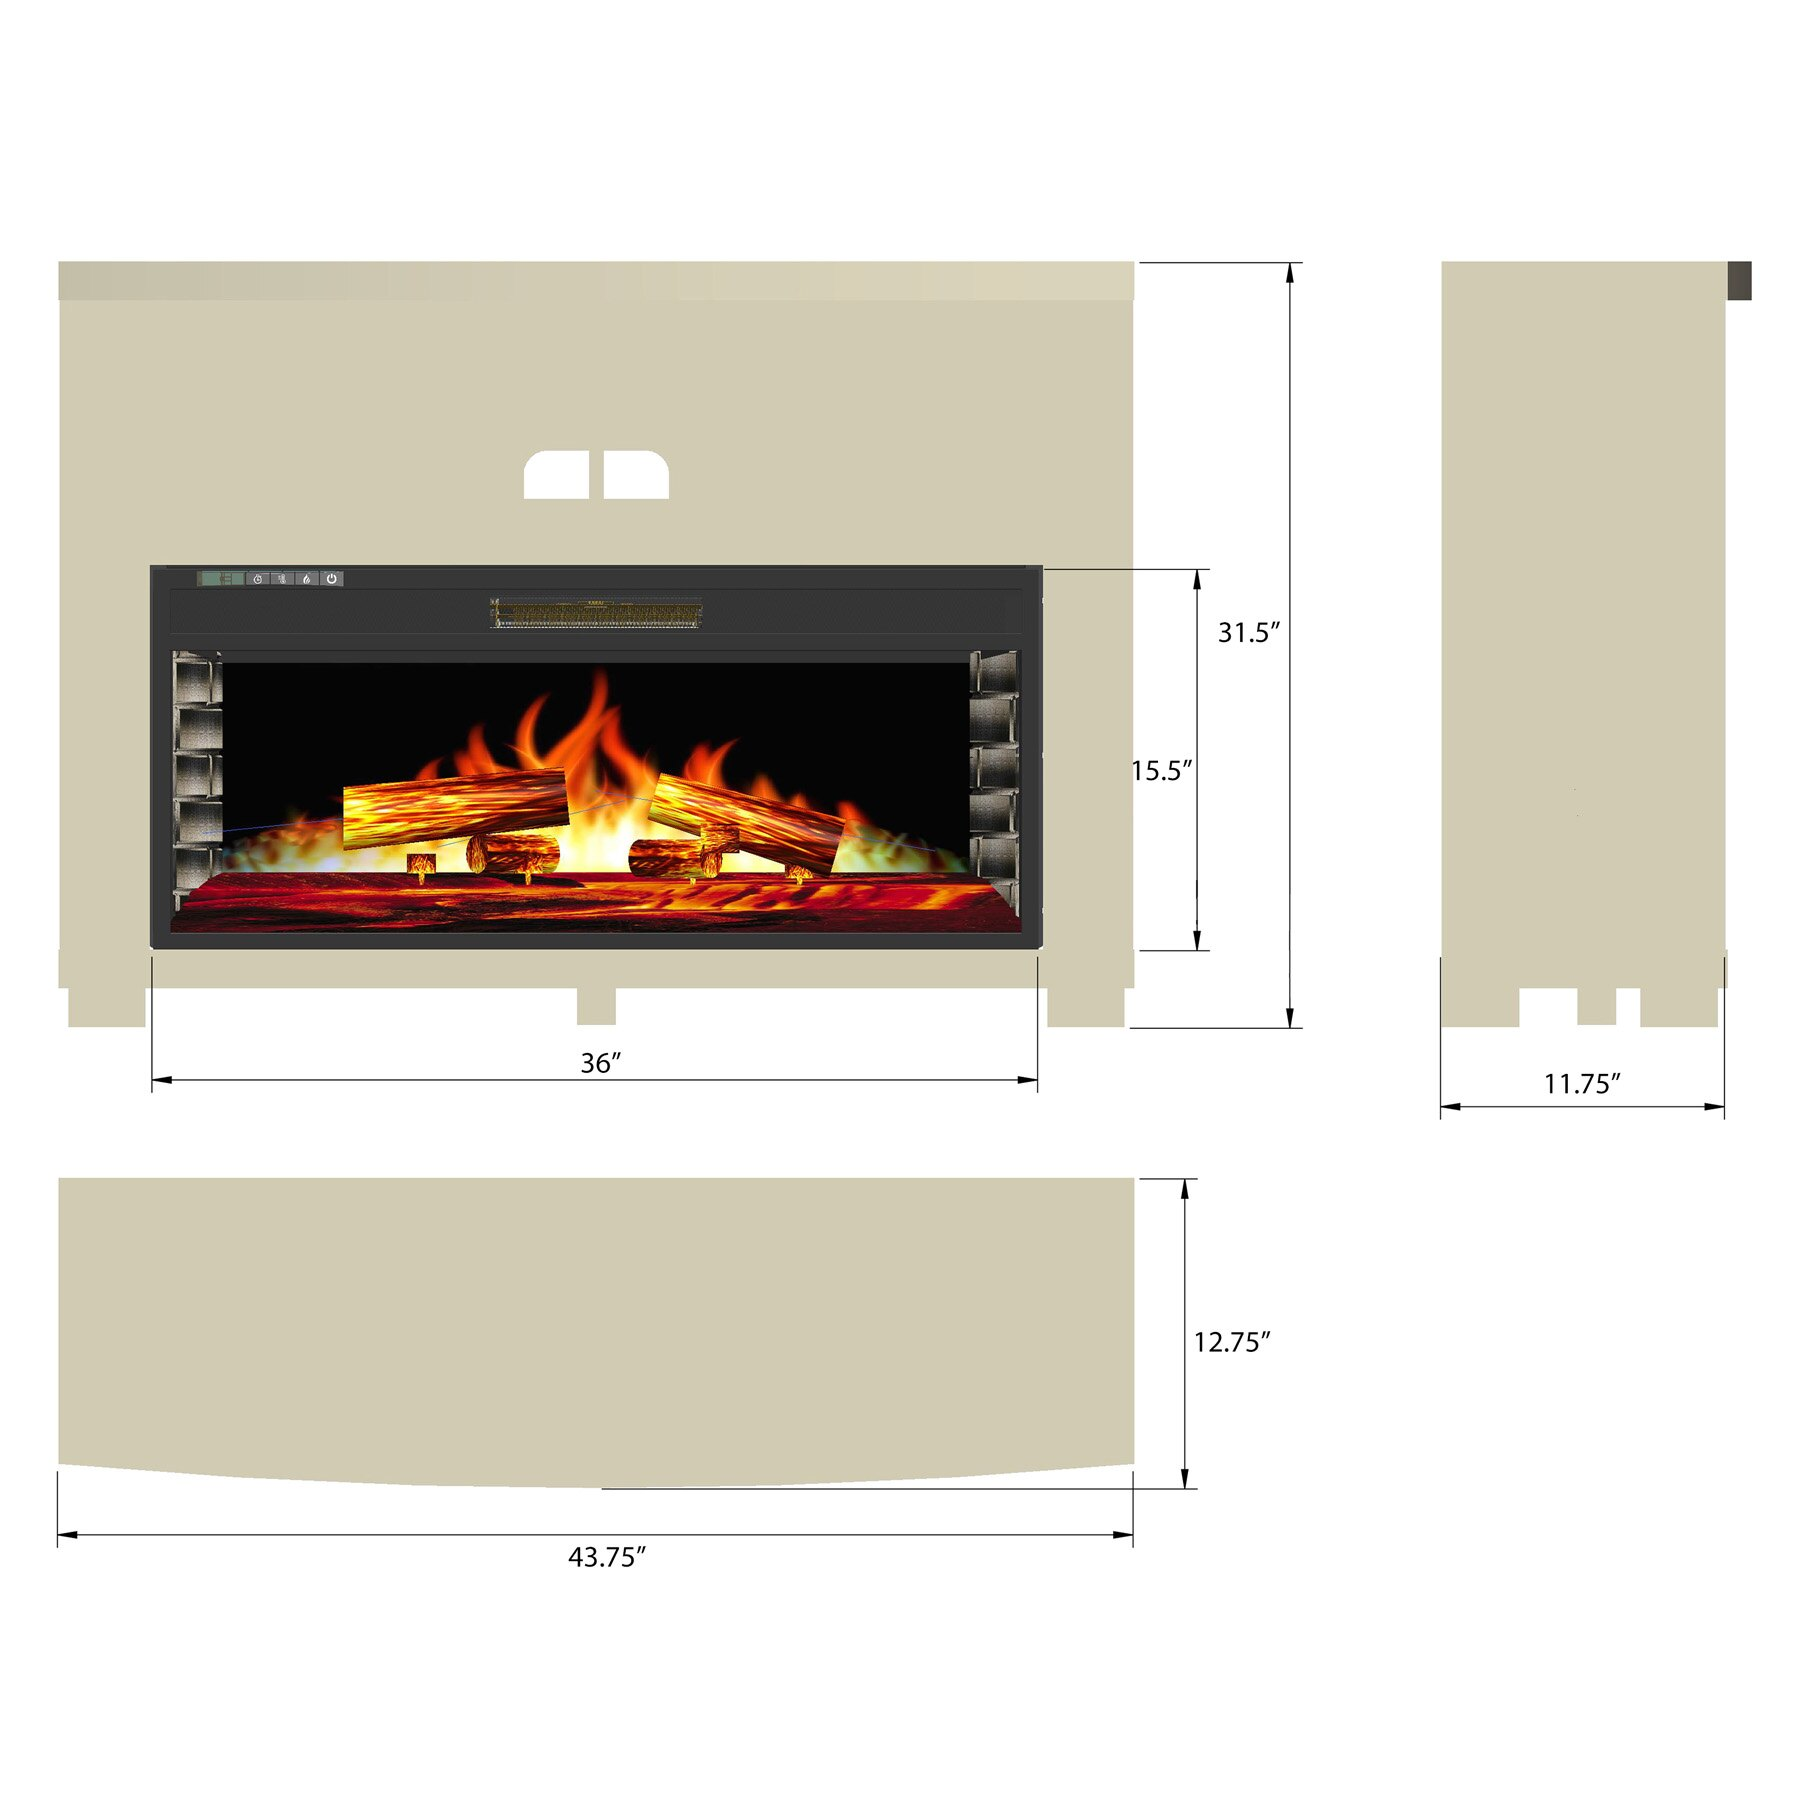 "AKDY 44"" Freestanding Insert Wooden Mantel 3D Flame Black Fireplace Heater Stove w/ Remote 1"